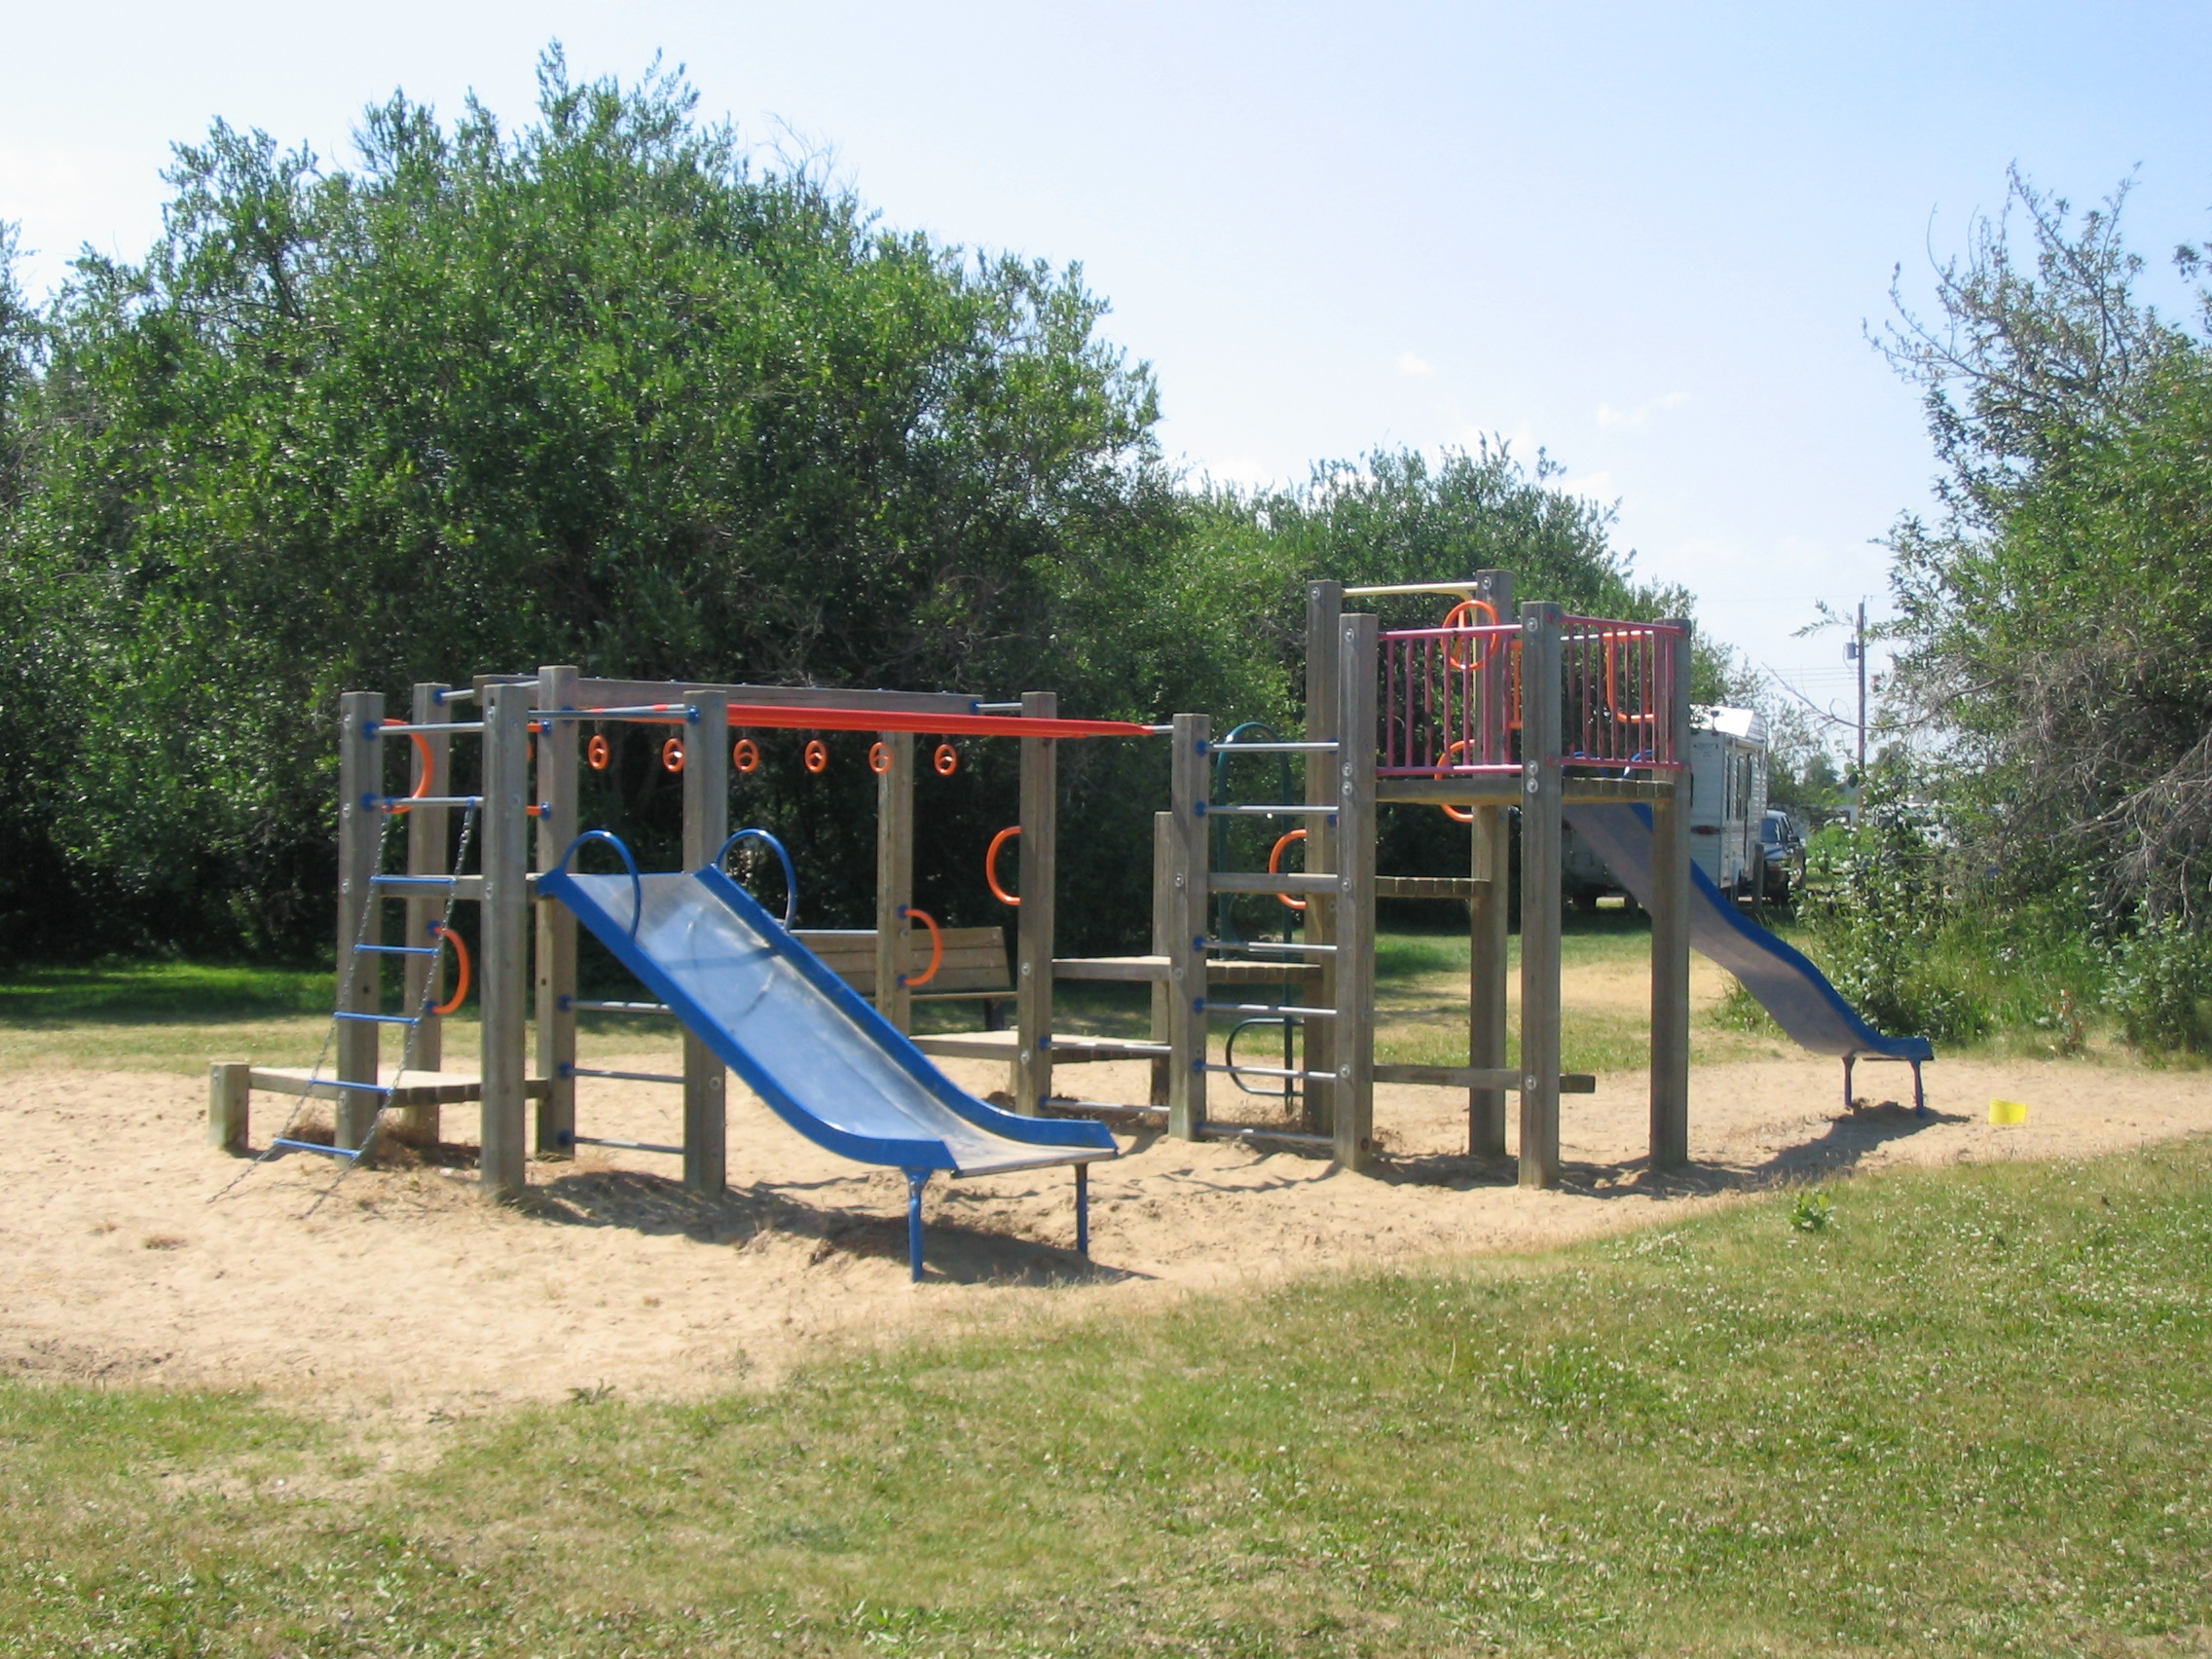 bl campground playground 043.jpg